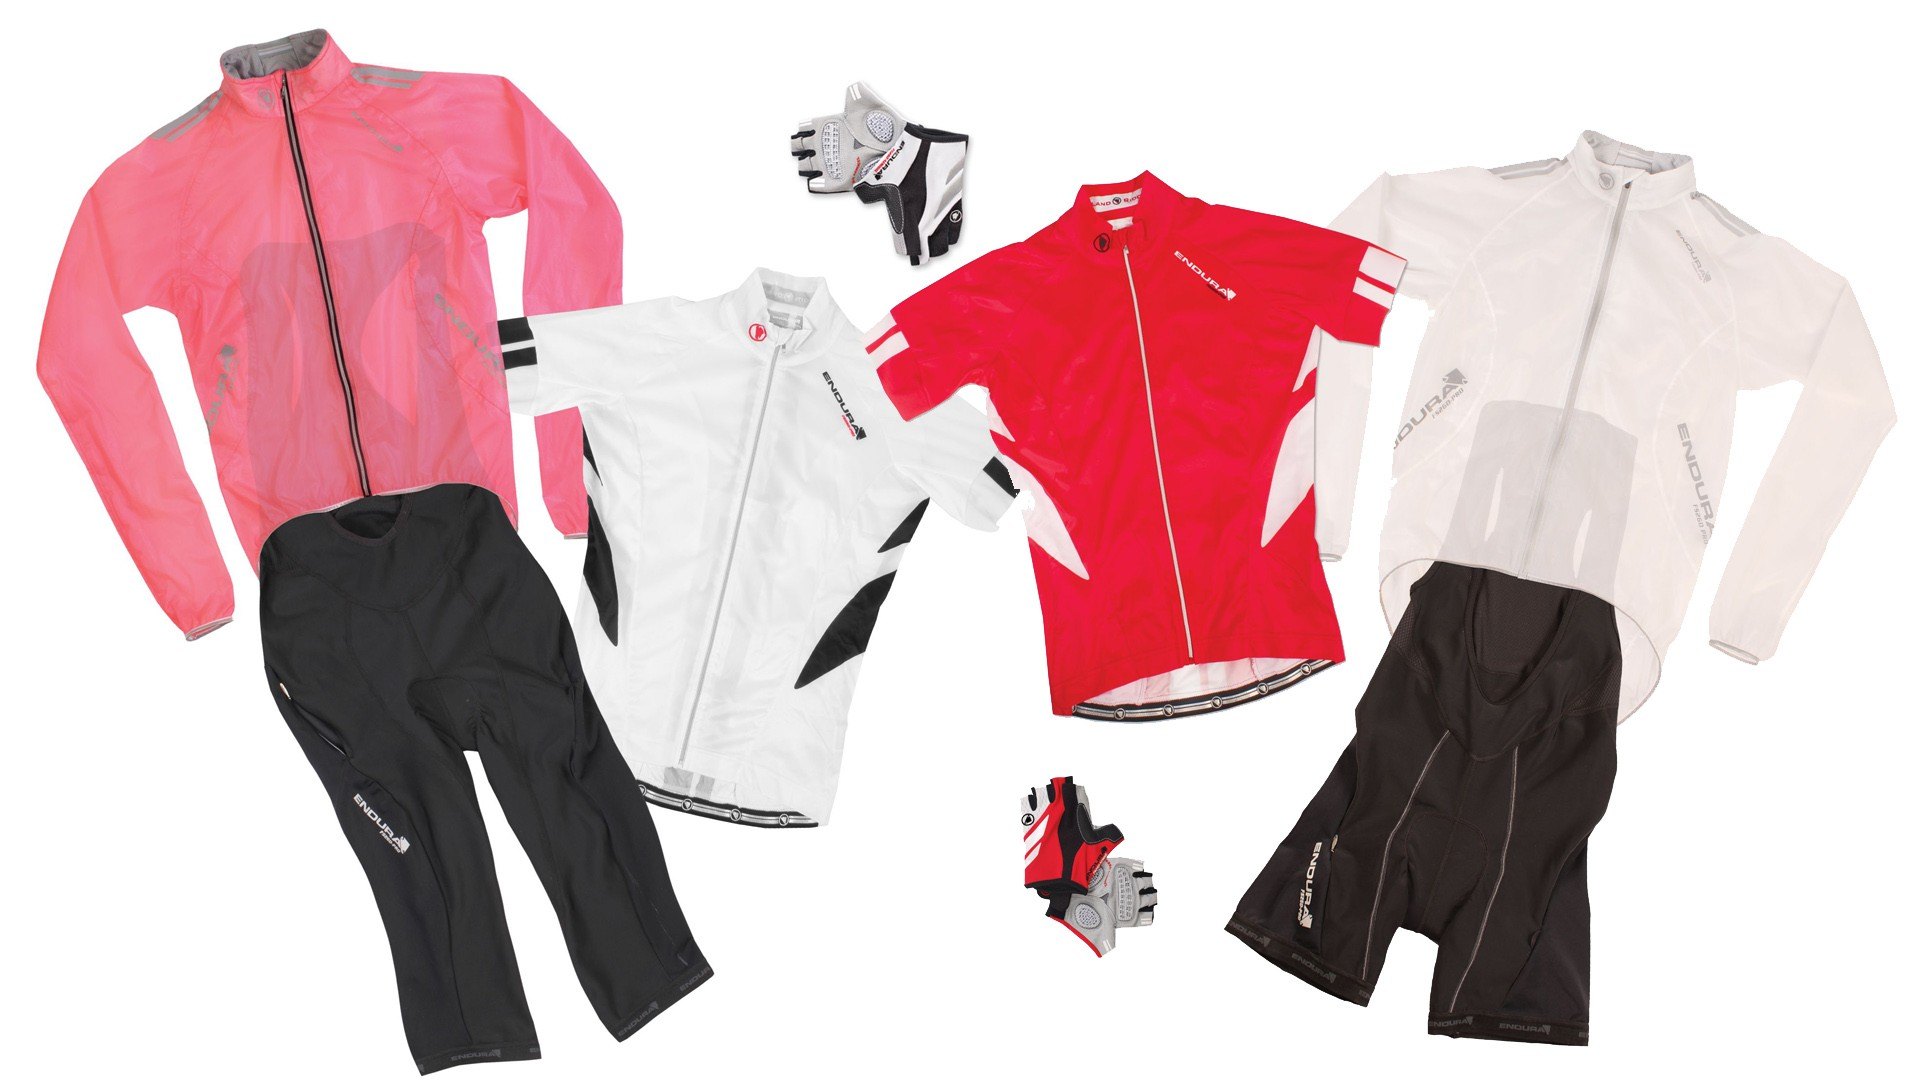 The women's road range includes FS260-Pro Bib Shorts, Jetstream Jersey, and Adrenaline Race Cape